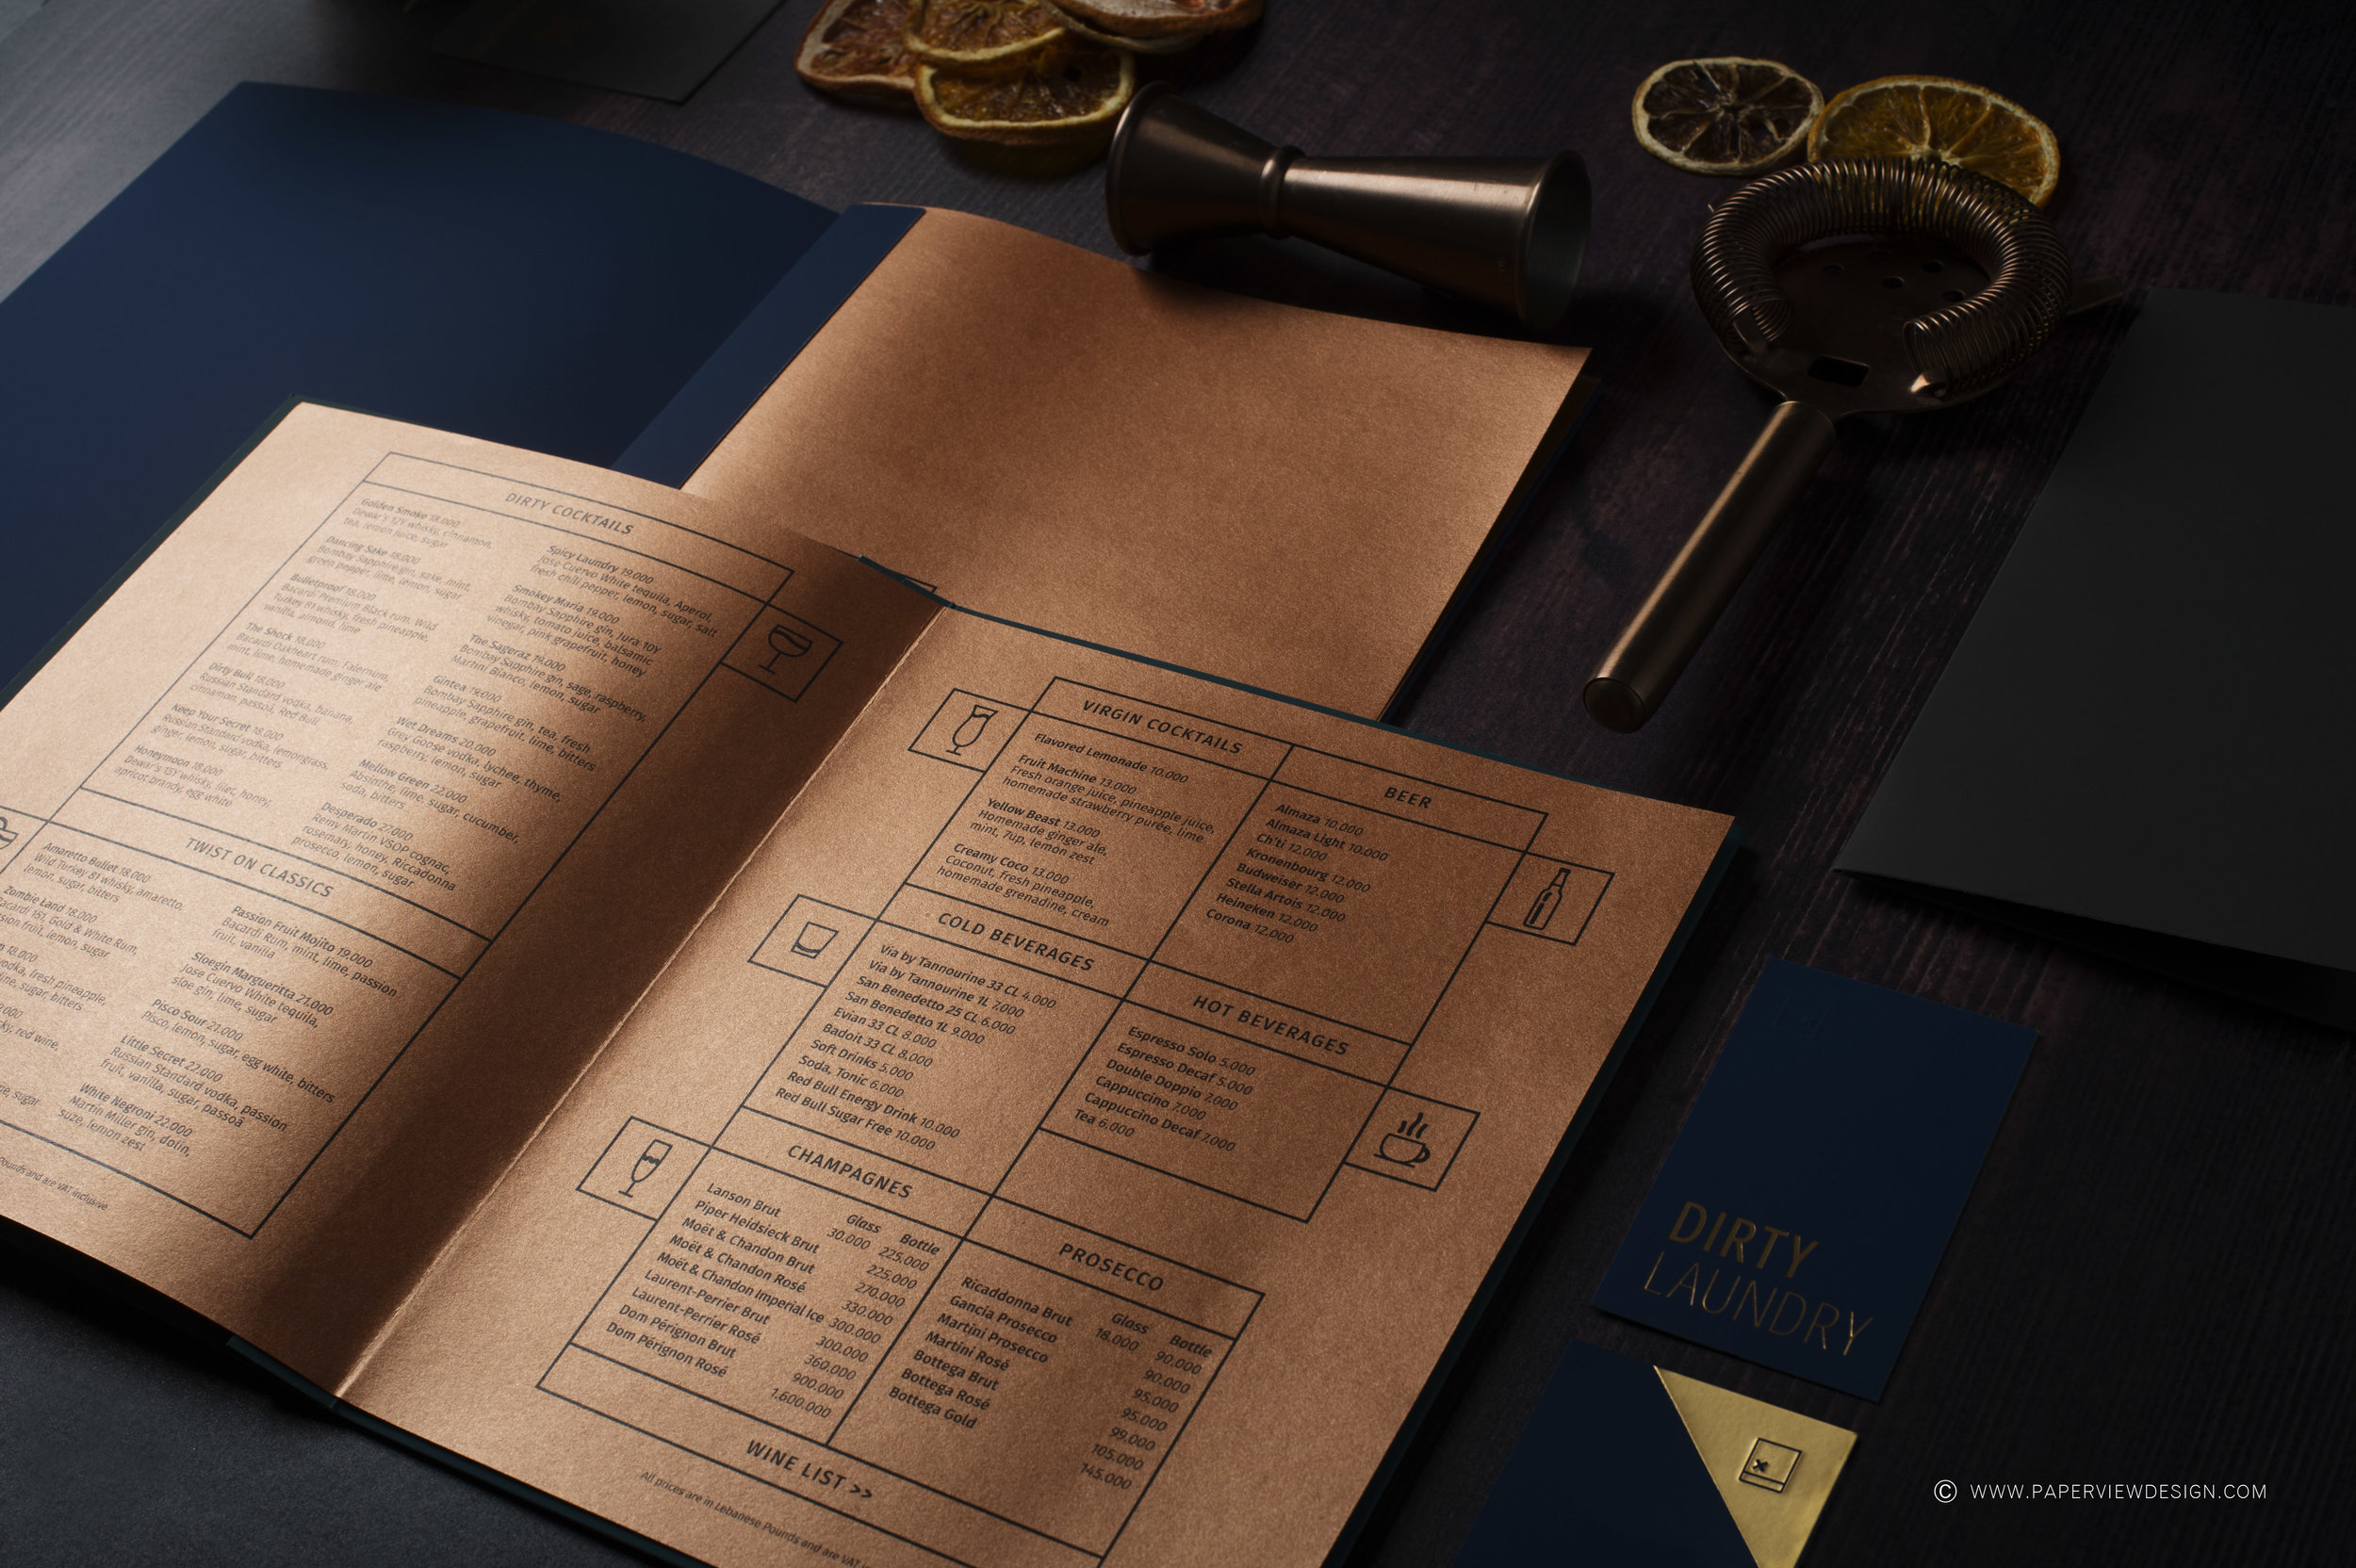 Menus-Inside-Sheets-Icons-Drink-Beverage-Cocktail-Photography-Original-Papers-Copper